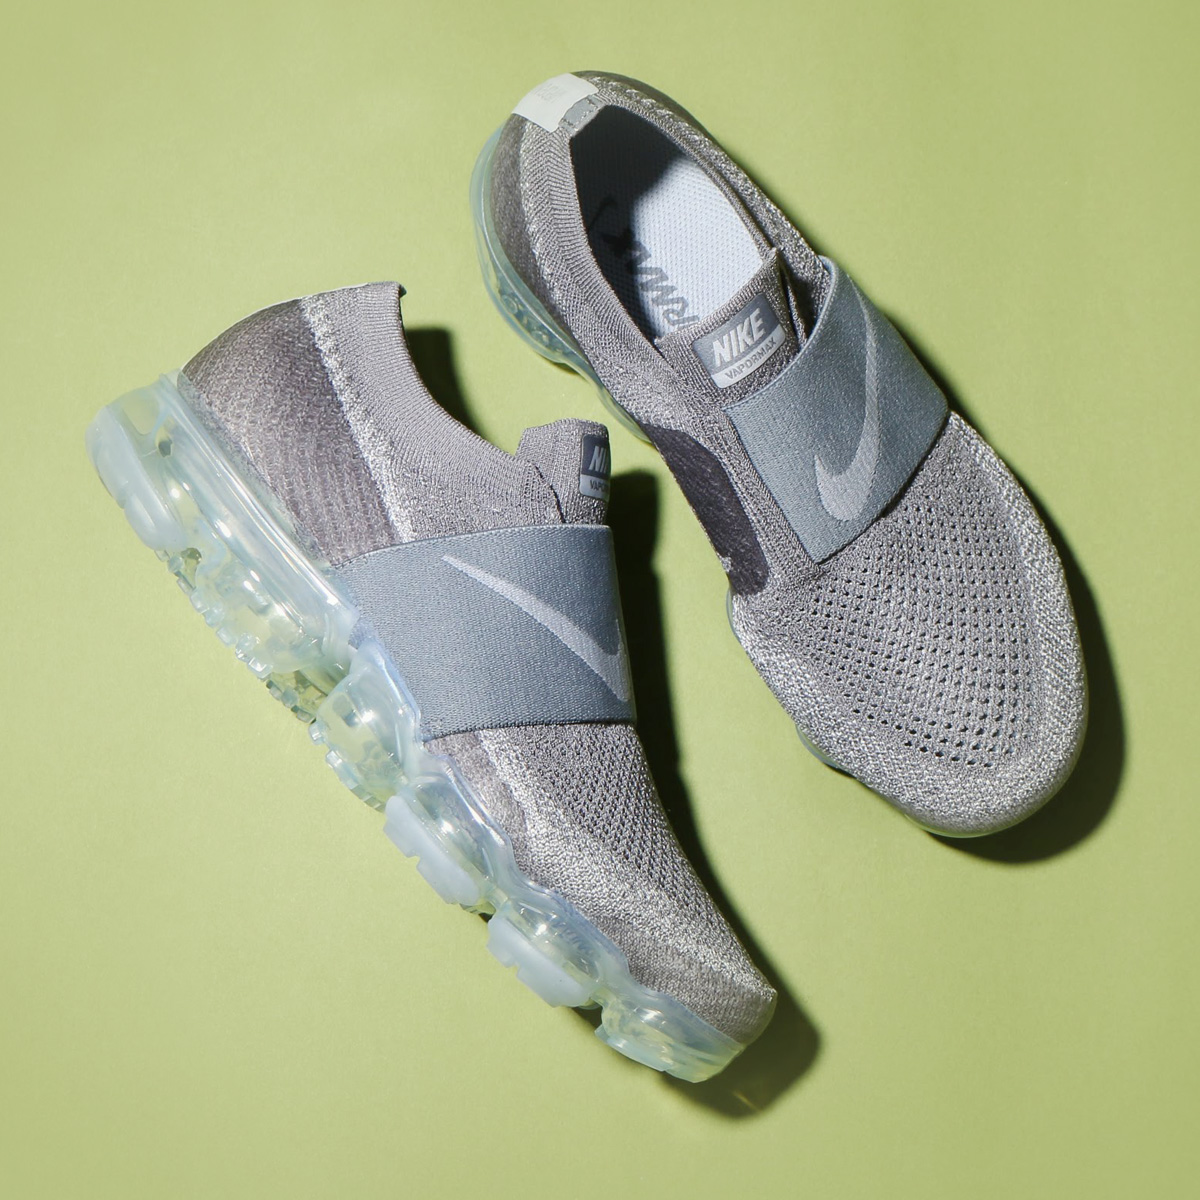 703a3ee4881f7 NIKE WMNS AIR VAPORMAX FK MOC (Nike women air vapor max fried food knit  mock) (COOL GREY WOLF GREY-HOT PUNCH-WHITE) 18SP-S